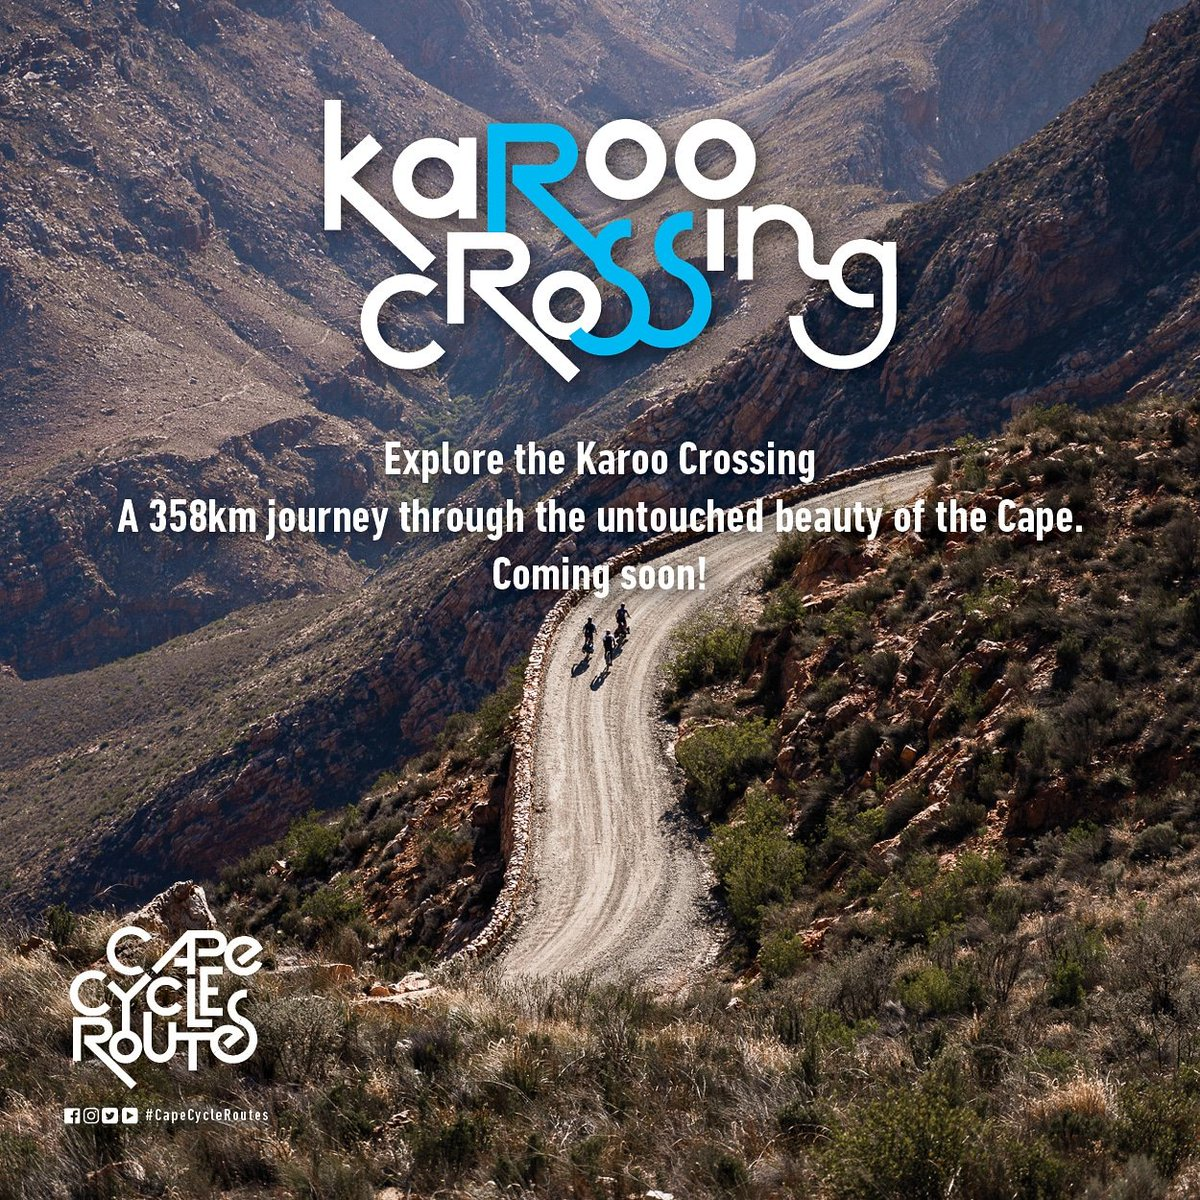 The new addition to the Cape Cycle Routes network.  The #KarooCrossing is a 358km journey through some of the most beautiful and historic landscapes in the Cape!  #CapeCycleRoutes #bikepacking #bikeadventure https://t.co/p7t7rpQ9Ic